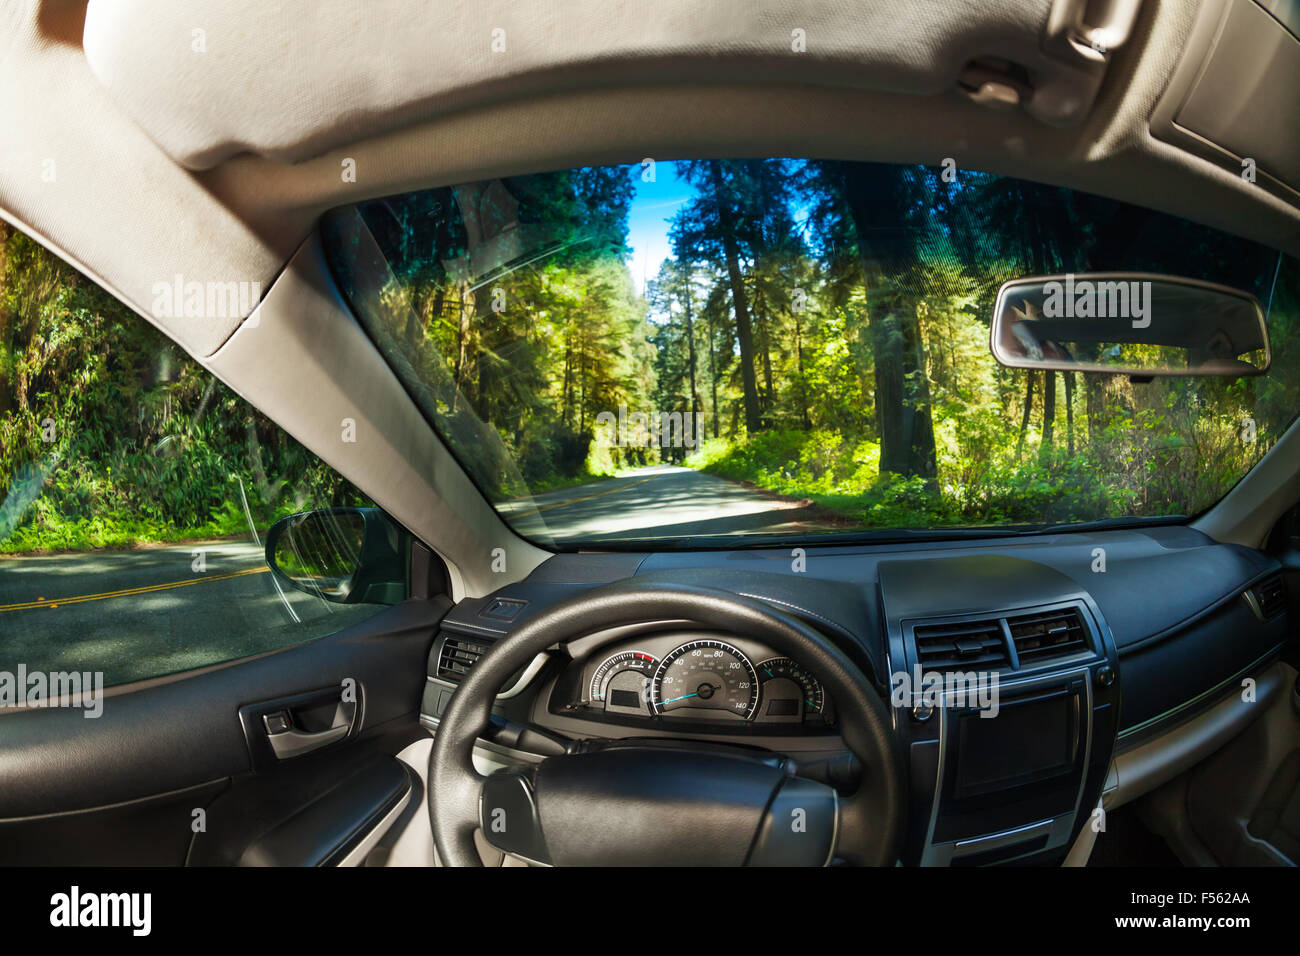 view inside the car with forest of redwood outside stock photo royalty free image 89258690 alamy. Black Bedroom Furniture Sets. Home Design Ideas